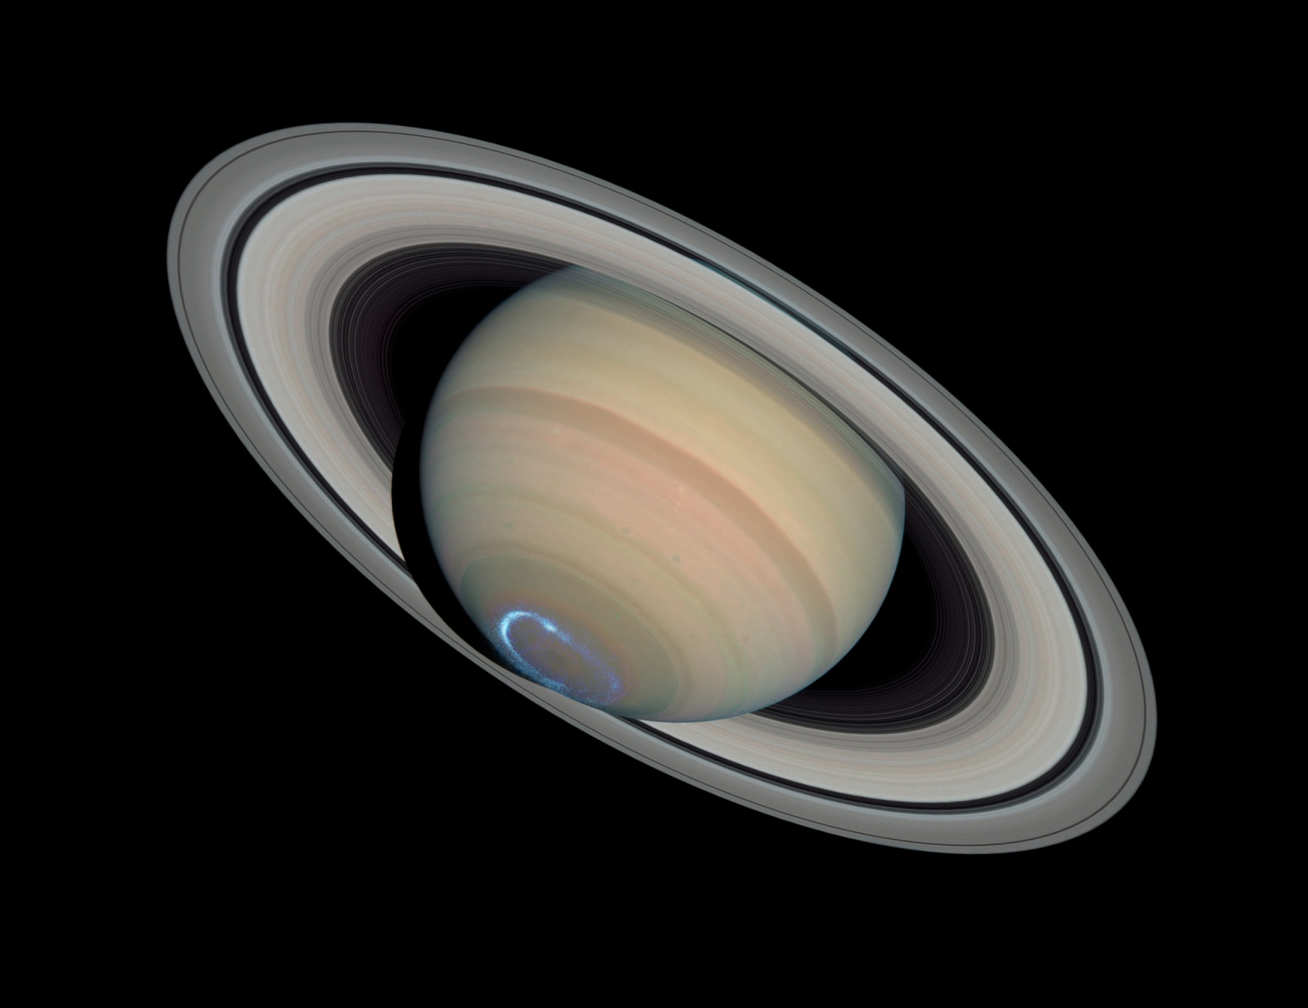 Saturn with a blue-white ring around the south pole